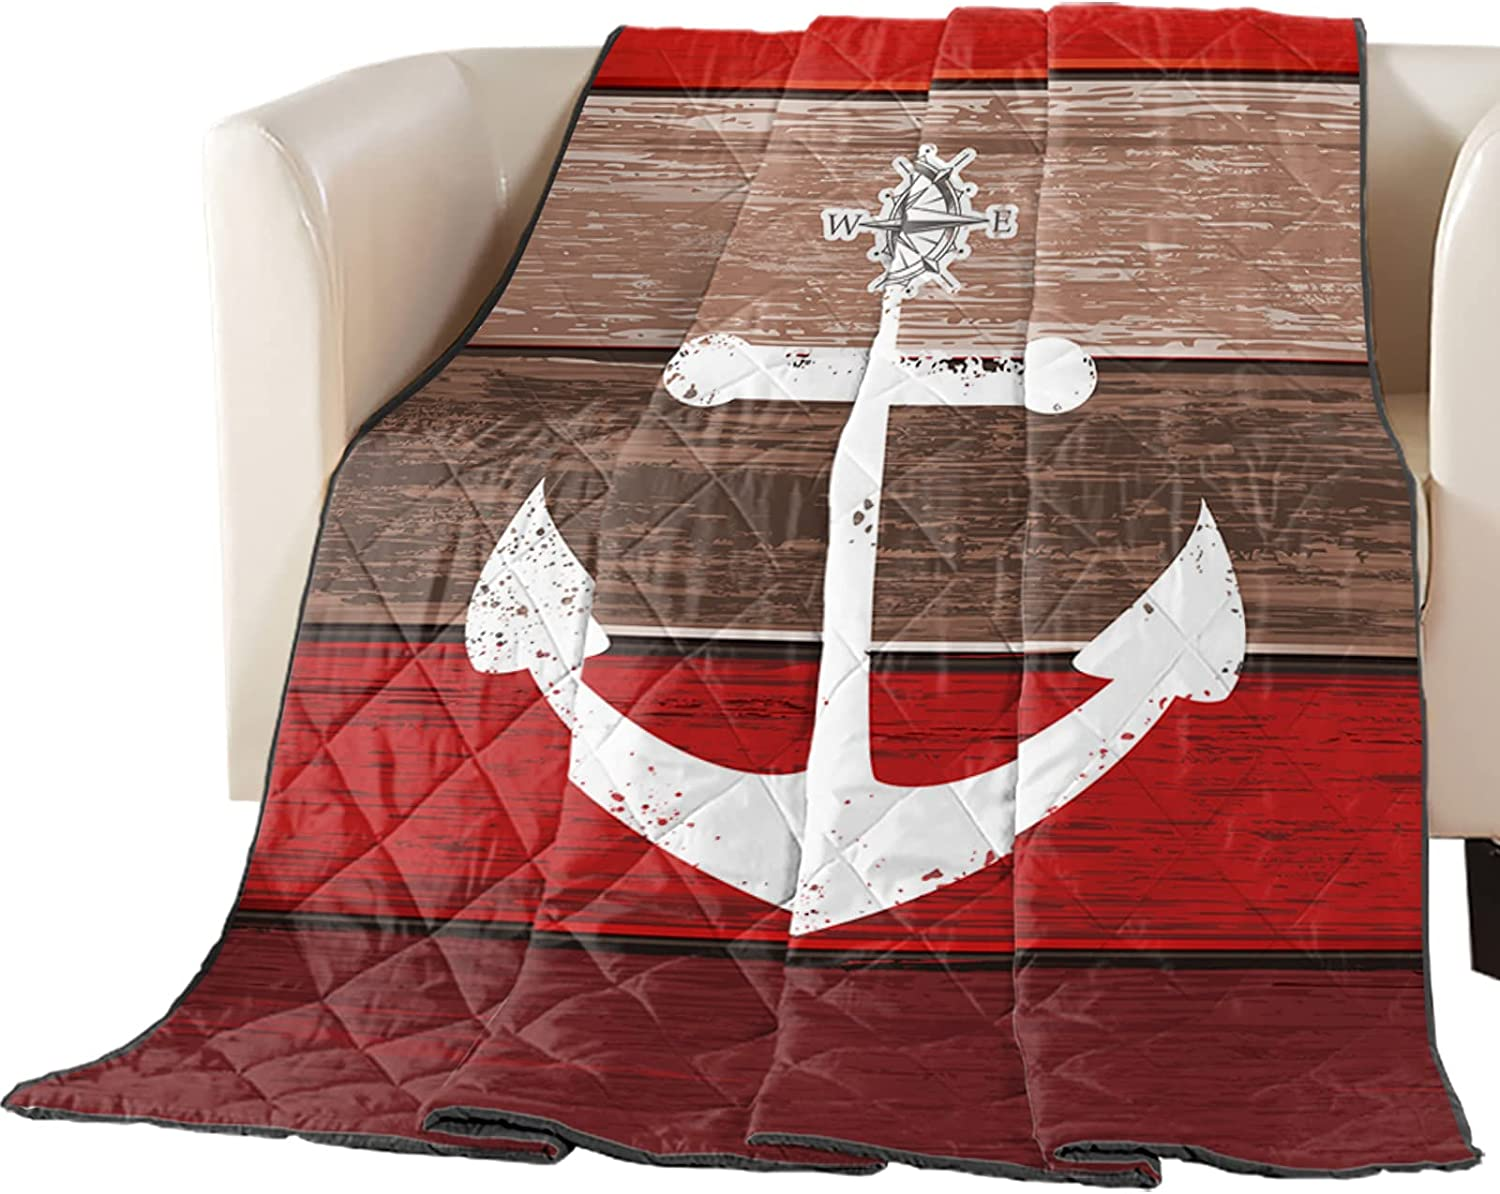 California King Quilt 67% OFF of fixed price Max 87% OFF Throw Bedspread Lightweight All Soft Seaso